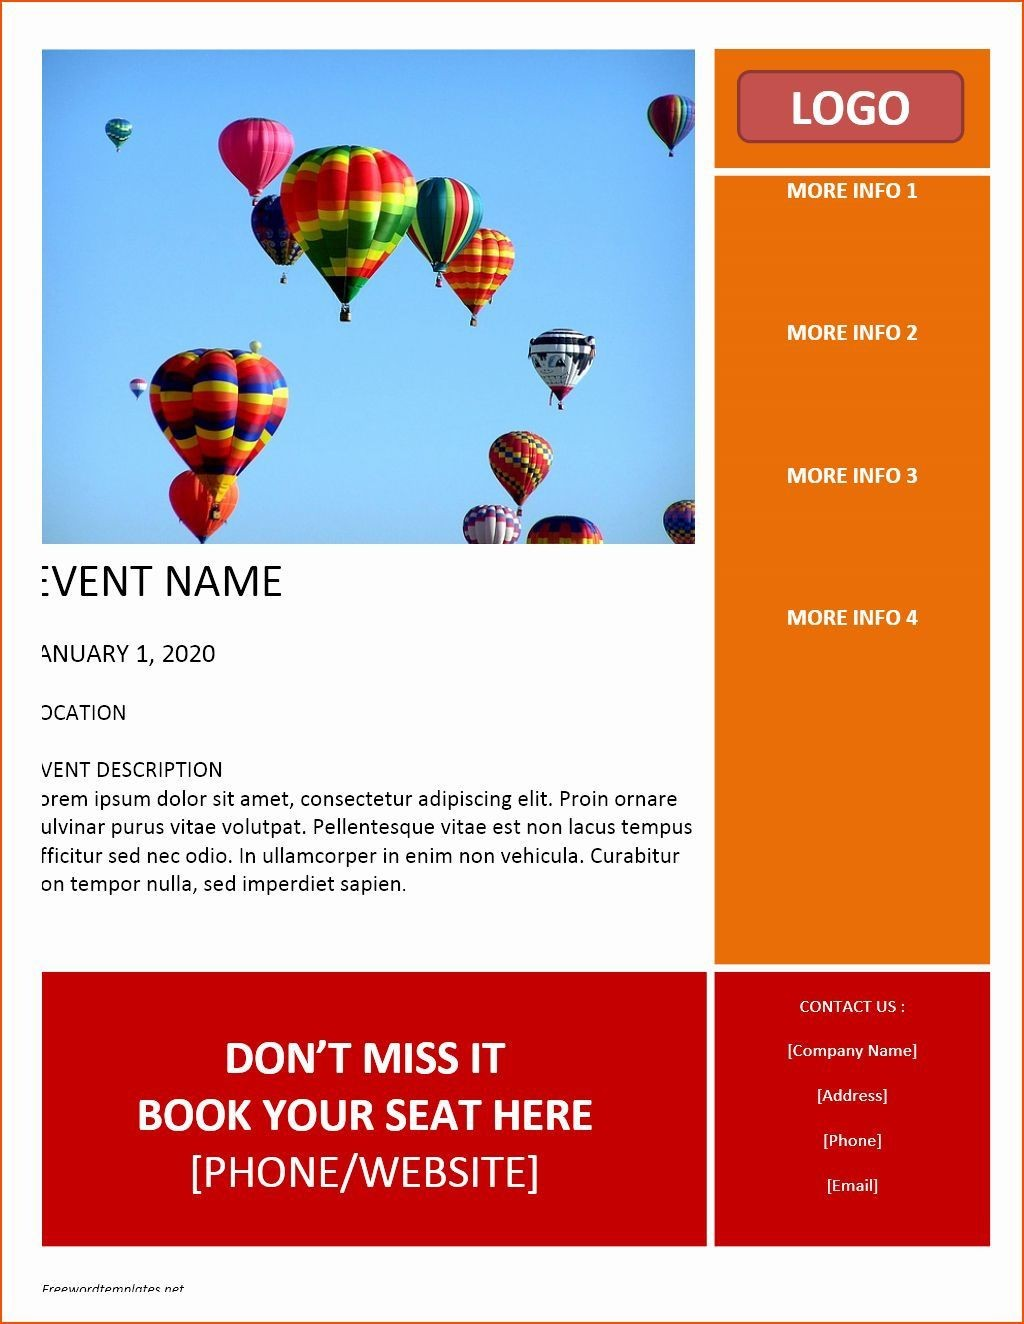 004 Impressive Free Flyer Template Word Image  Document Blank DownloadLarge